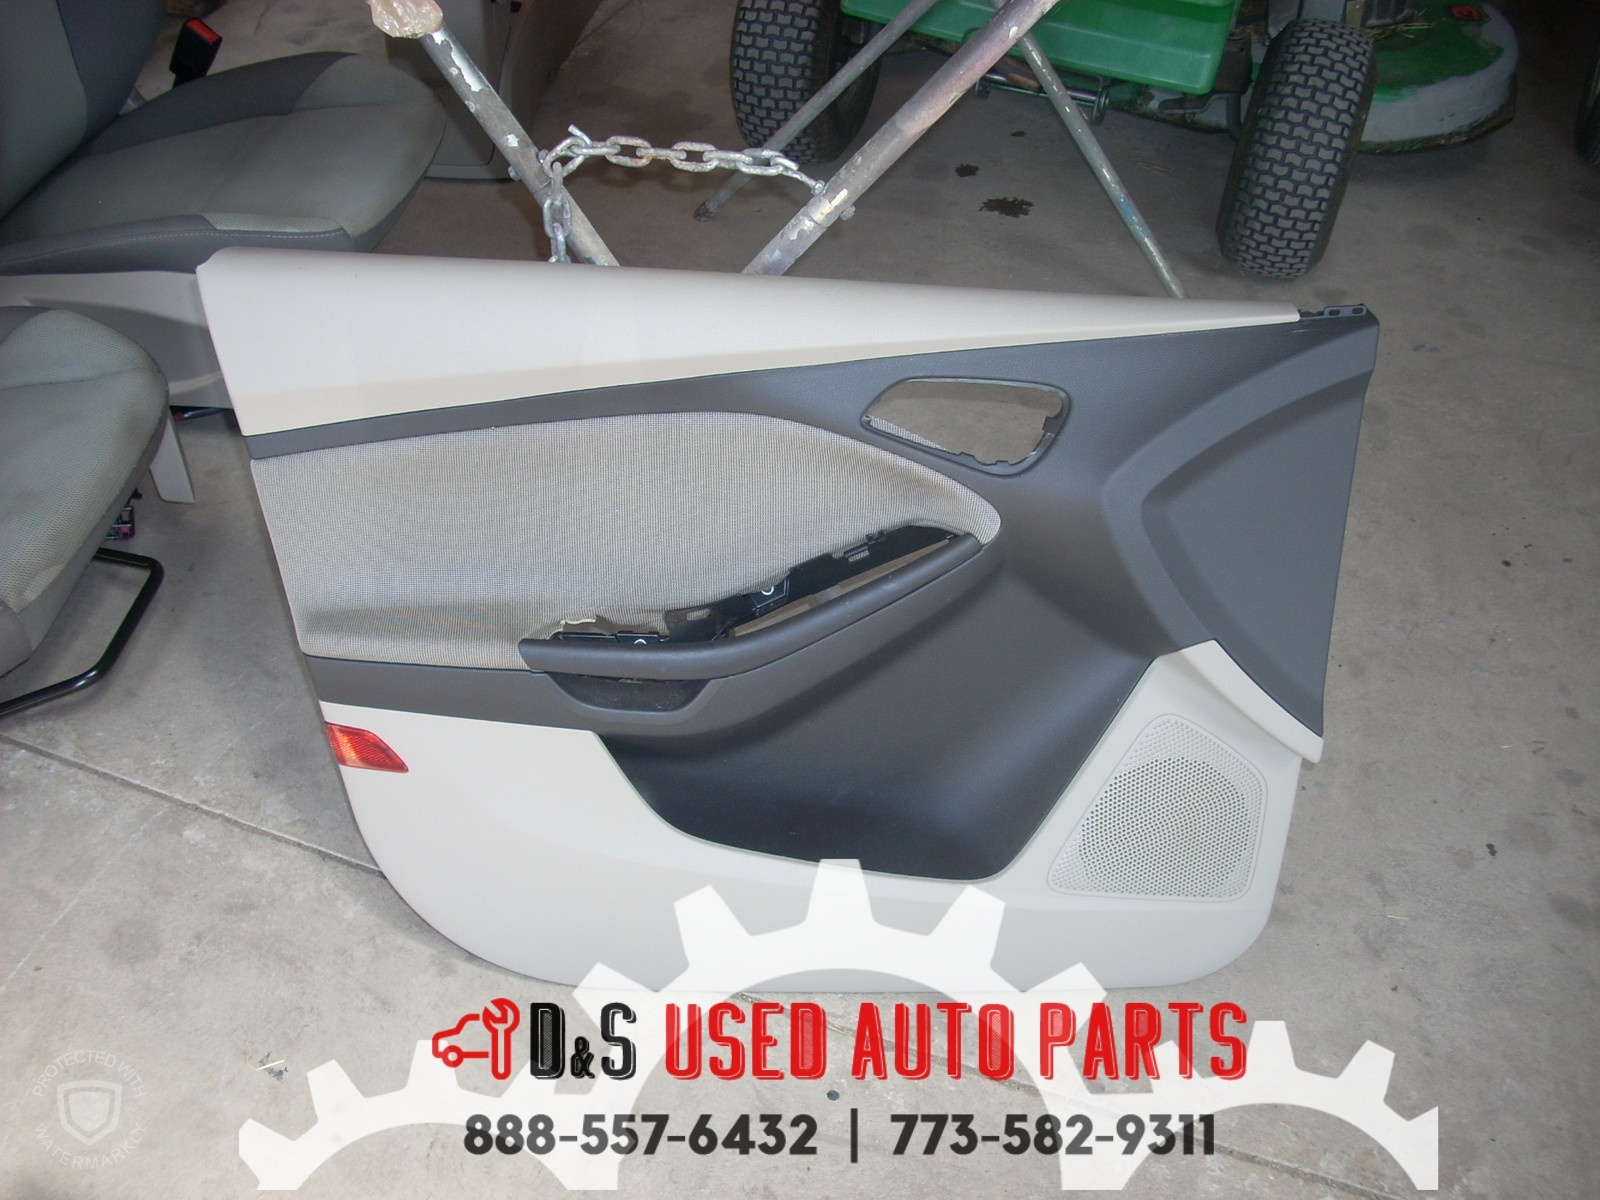 2012 FORD FOCUS LEFT FRONT GRAY AND BLACK DOOR TRIM PANEL #1820